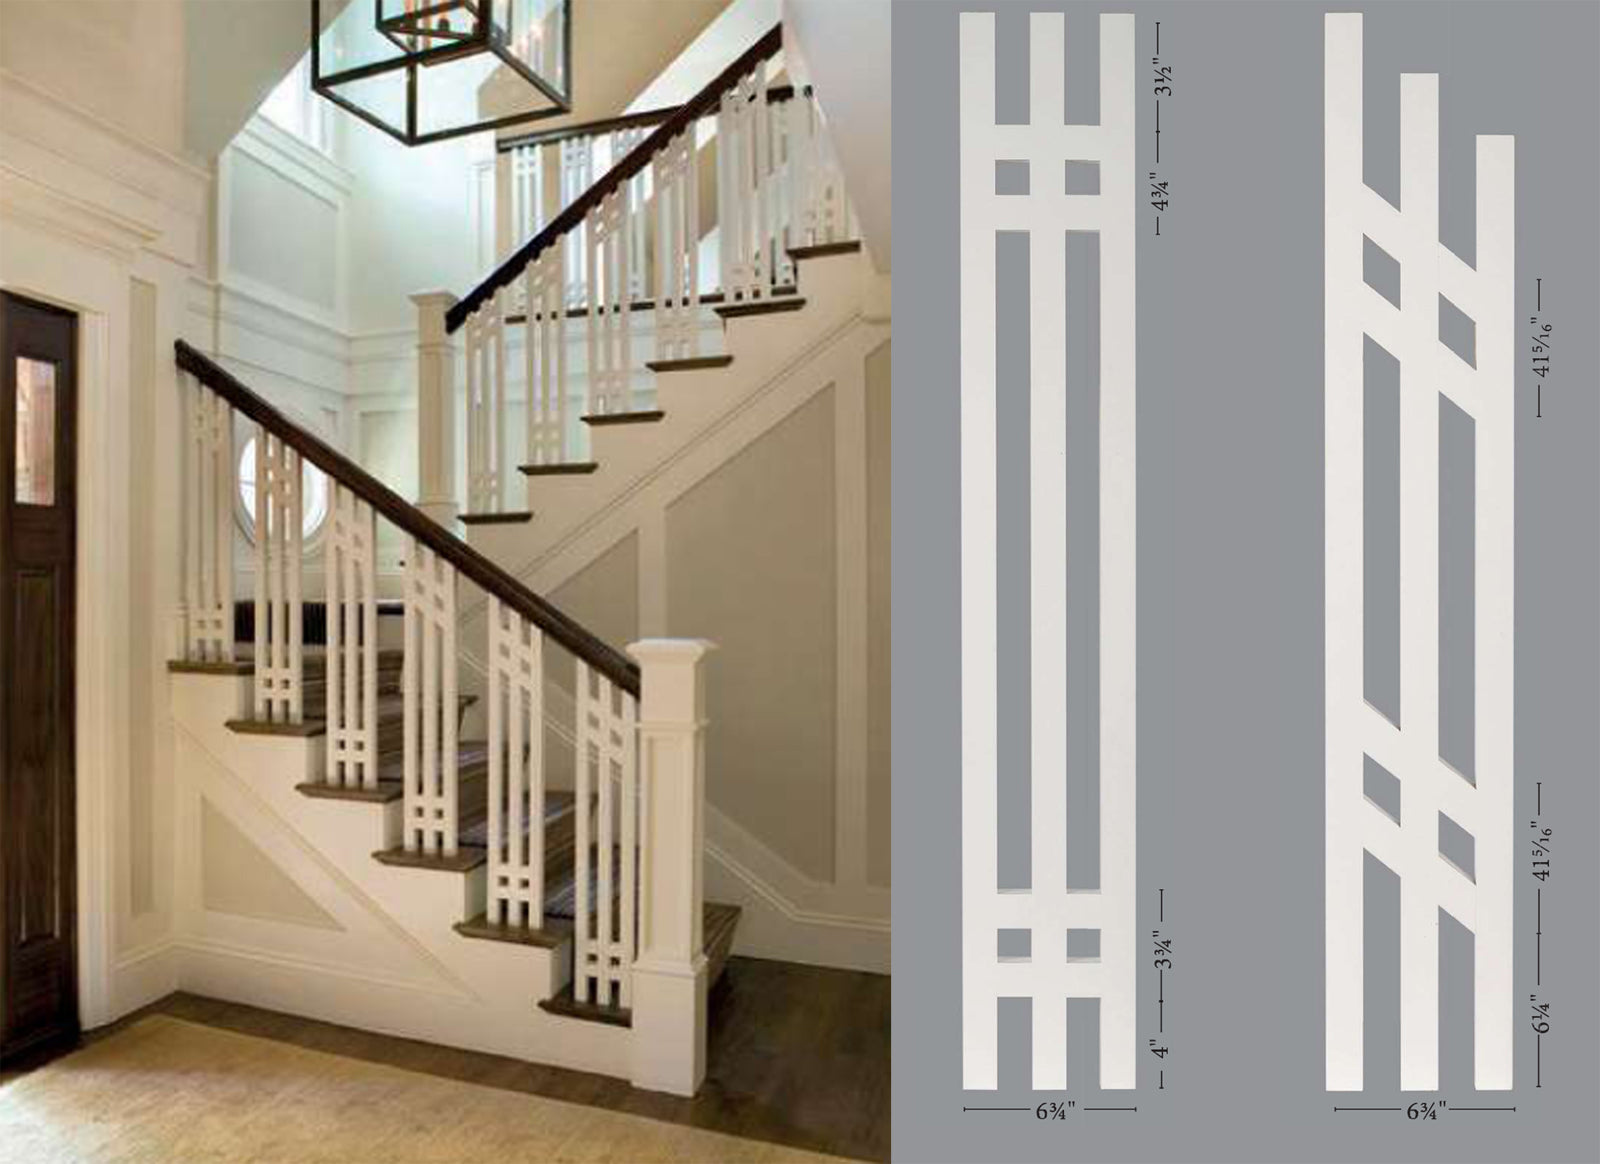 Harborside Mission Prairie Baluster Panels and Staircase